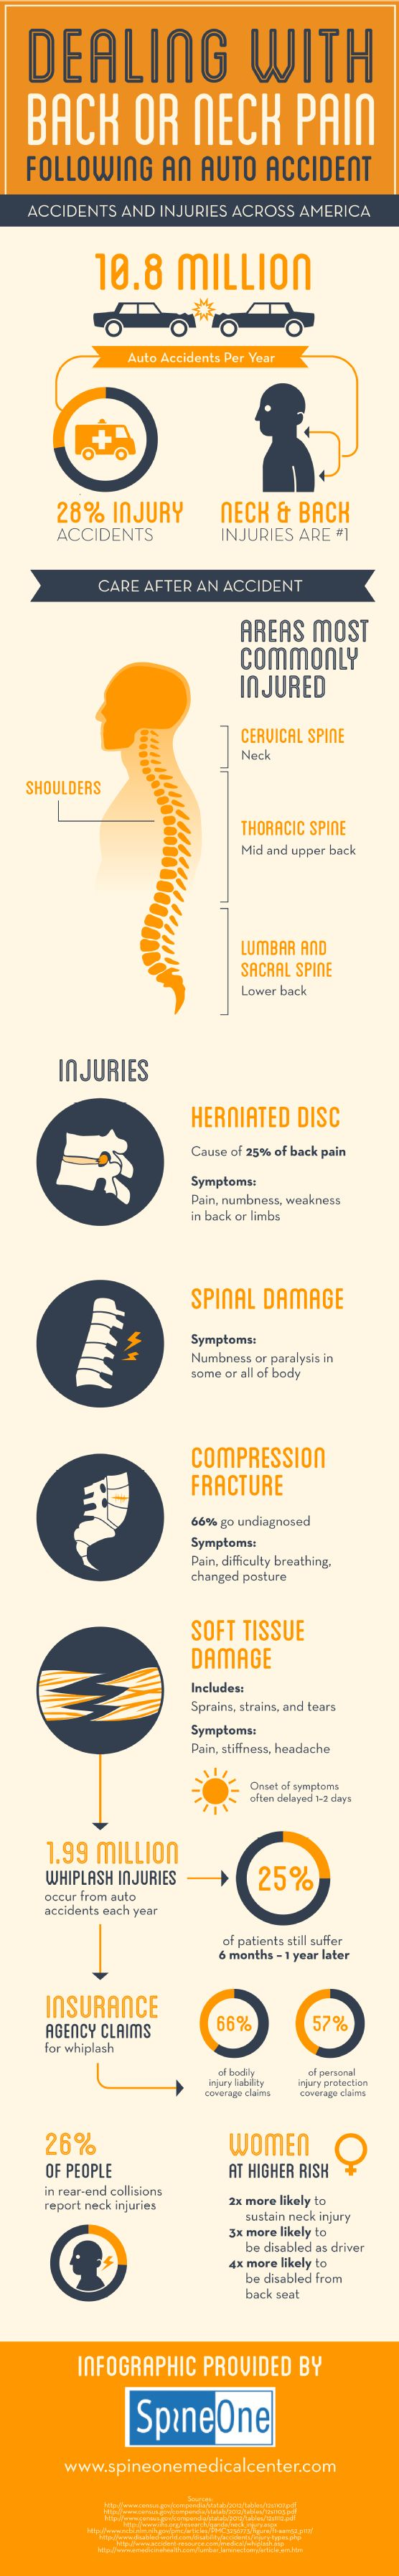 66% of compression fractures go undiagnosed. If you have recently been involved in an auto accident, find out how to handle your back pain or neck pain by reading through this spine care infographic. Source: http://www.spineonemedicalcenter.com/662481/2013/03/13/dealing-with-back-or-neck-pain-following-an-auto-accident.html